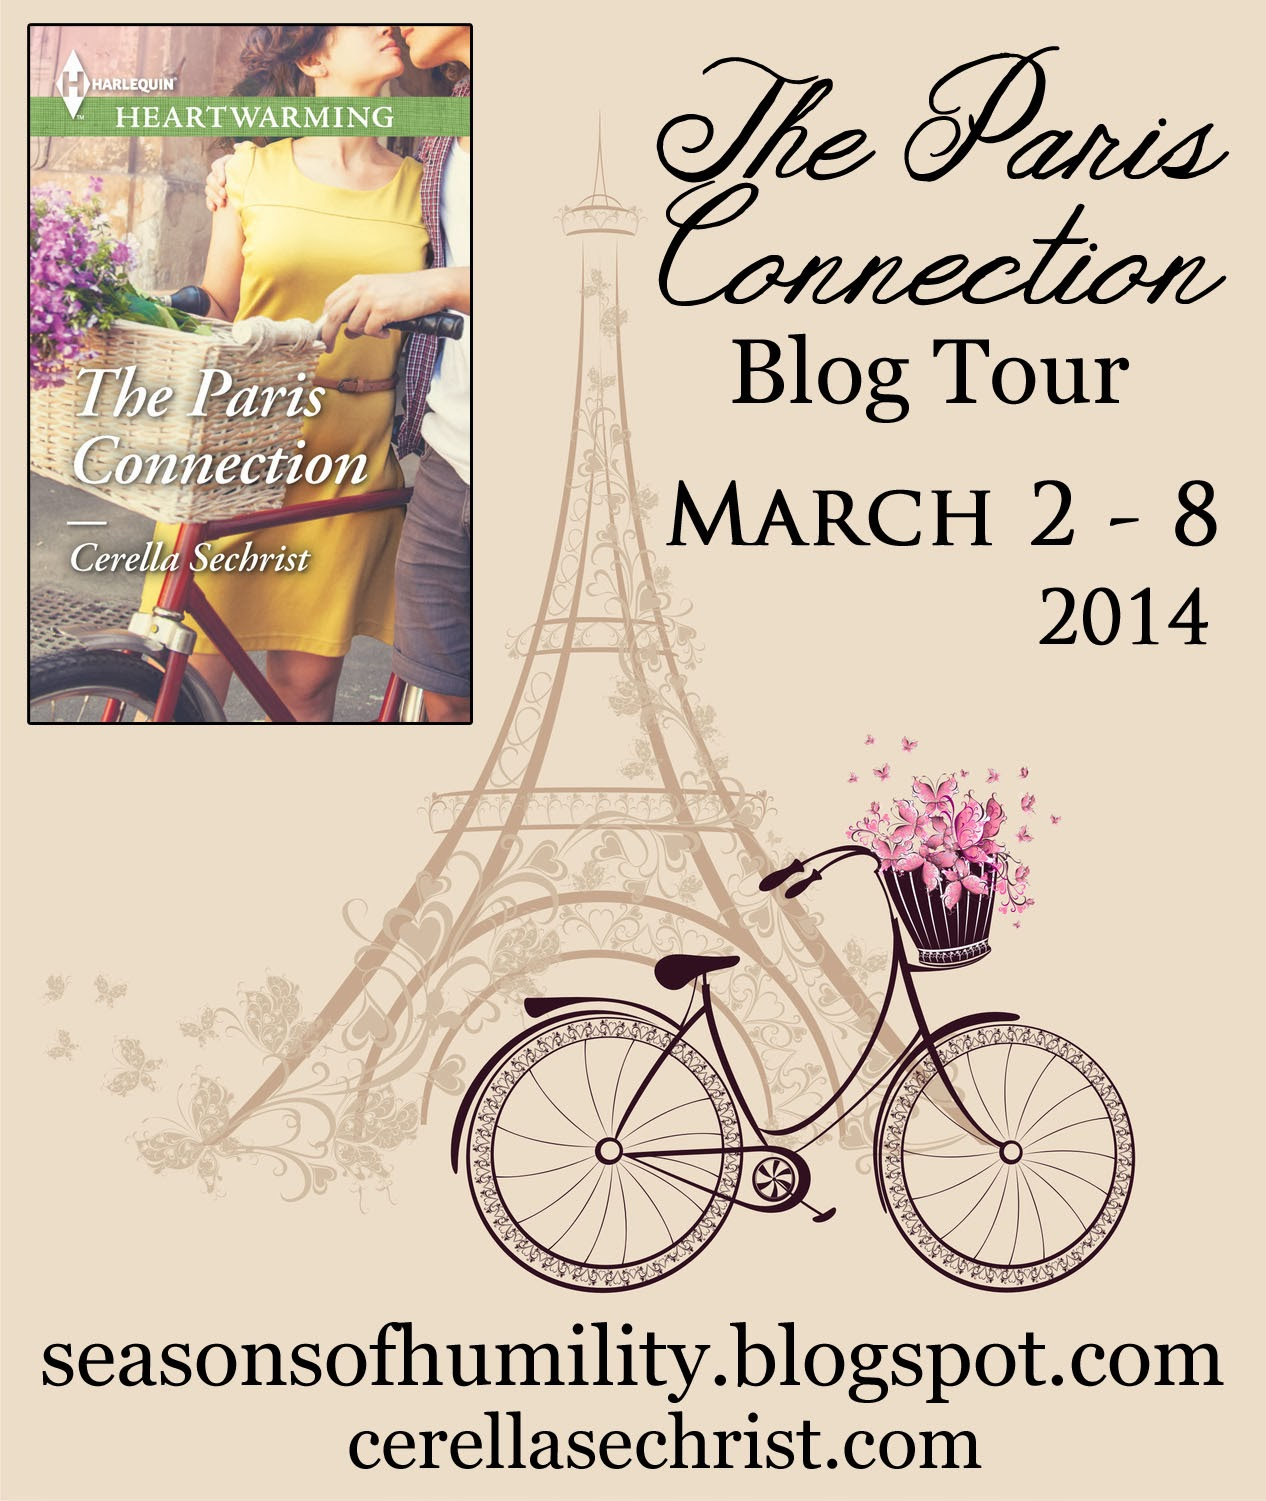 http://seasonsofhumility.blogspot.com/p/the-paris-connection-blog-tour.html